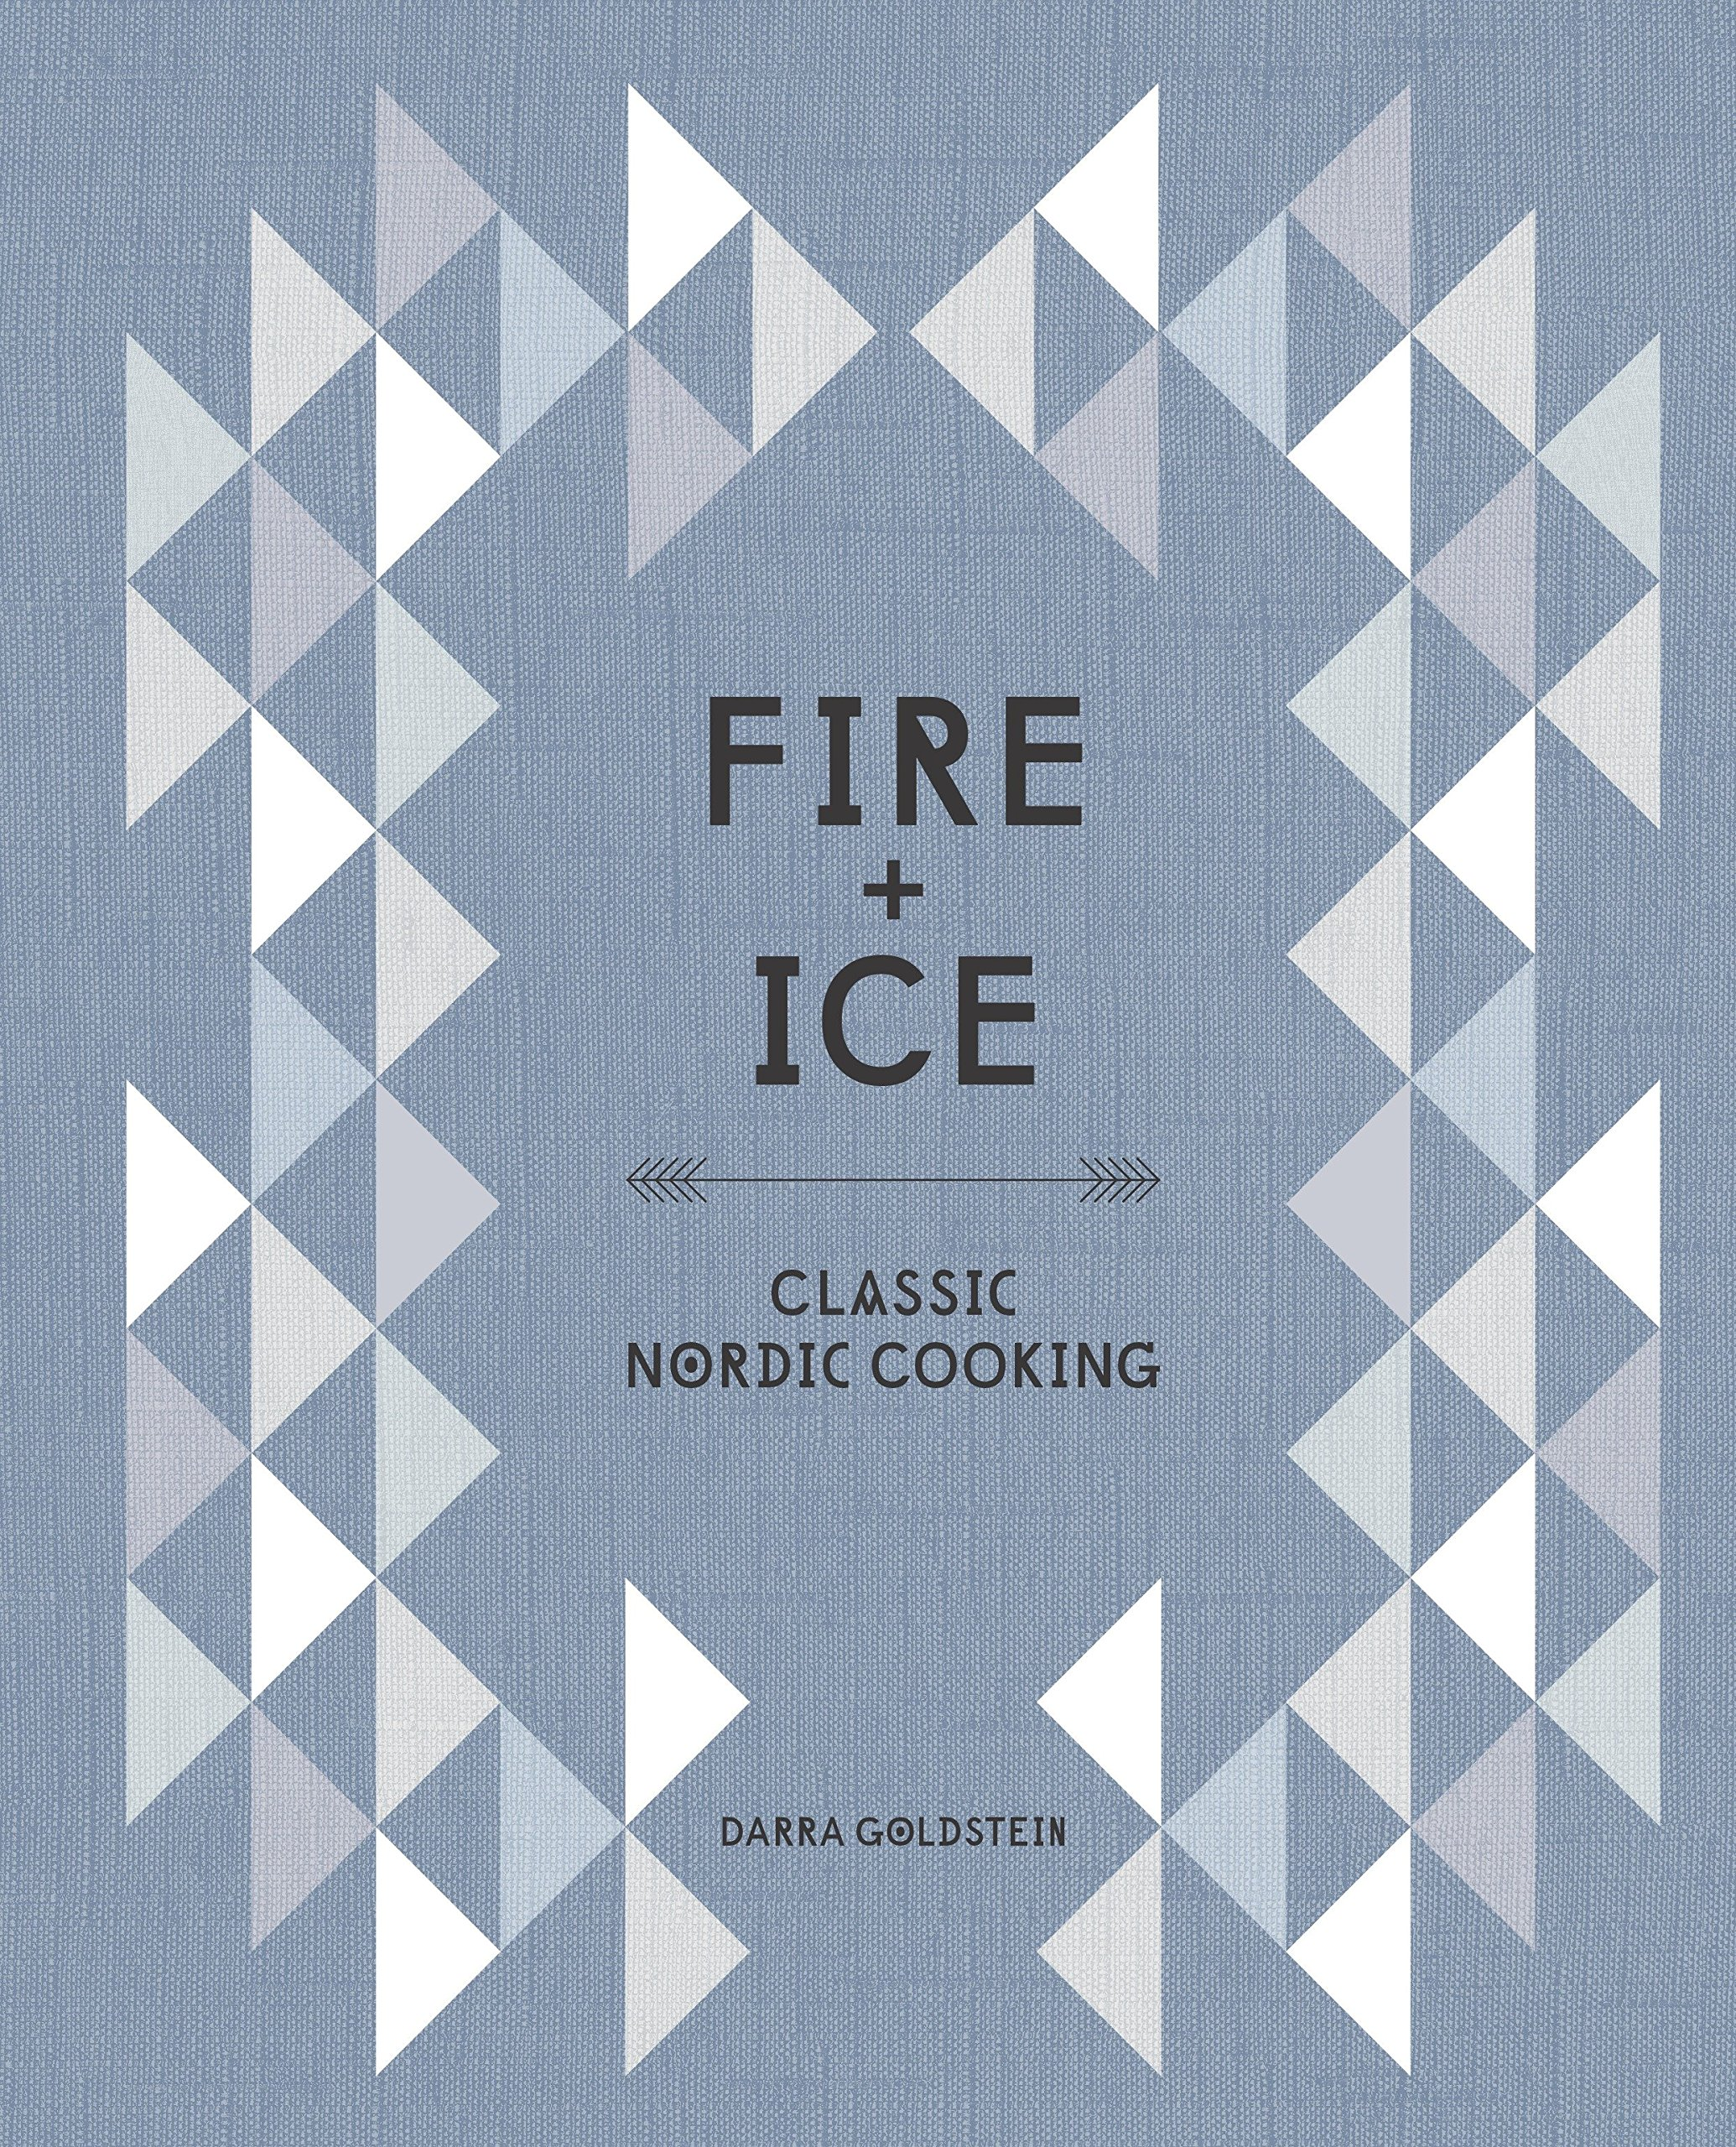 Fire and Ice: Classic Nordic Cooking Hardcover – October 13, 2015 Darra Goldstein Ten Speed Press 1607746107 Cookbooks